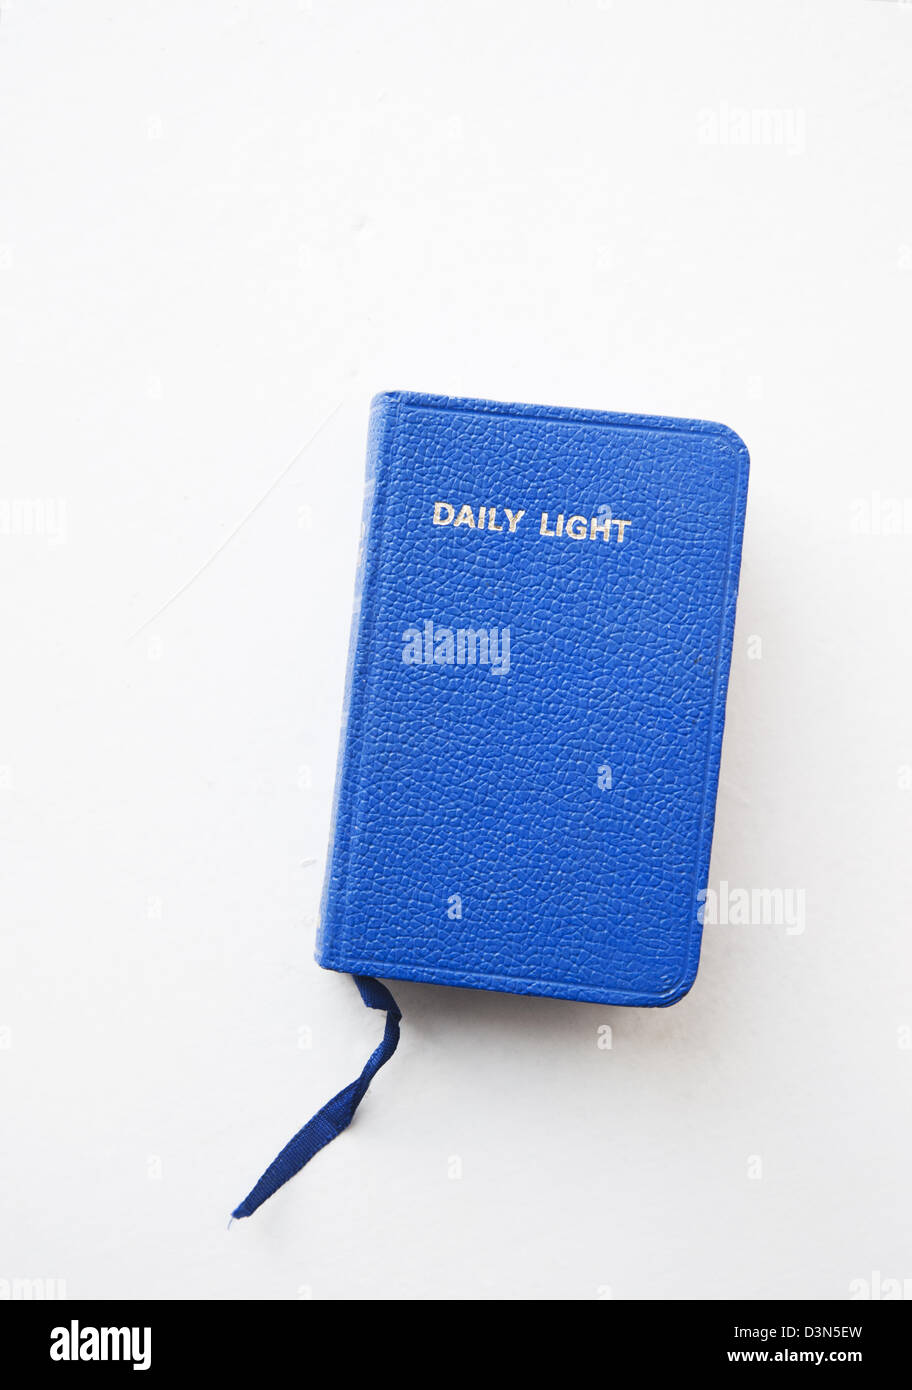 A book with uplifting religious sayings called 'Daily Light' - Stock Image